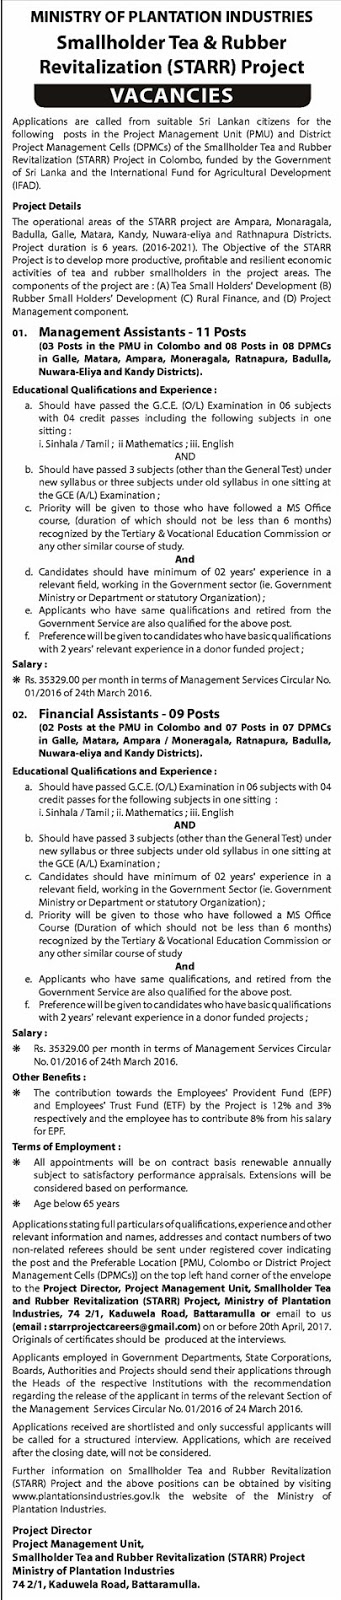 Sri Lankan Government Job Vacancies at Ministry of Plantation Industries for Management Assistant, Financial Assistant